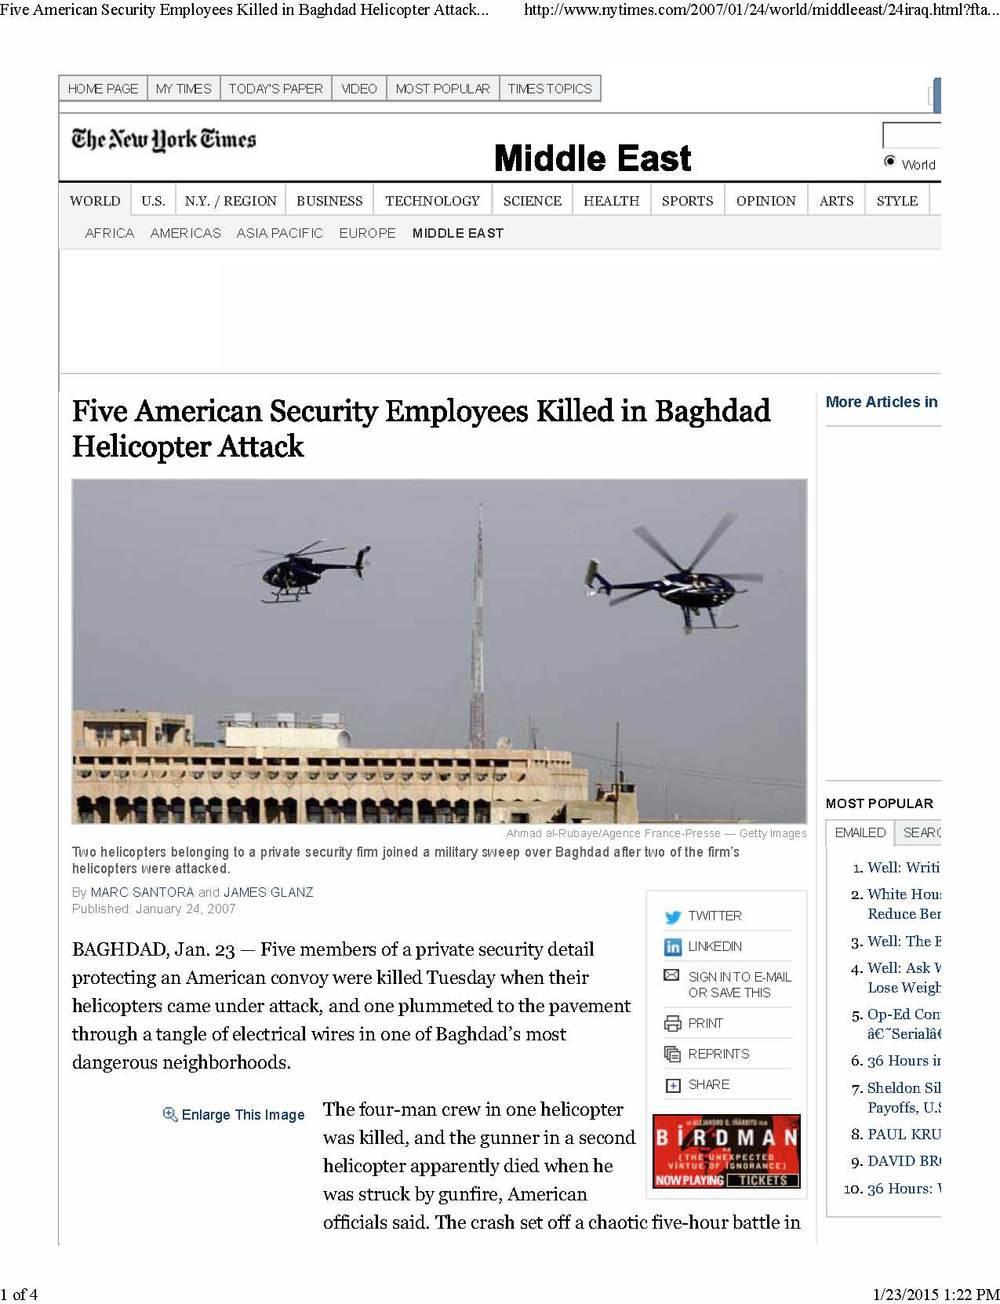 Five American Security Employees Killed in Baghdad Helicopter Attack - New York Times_Page_1.jpg